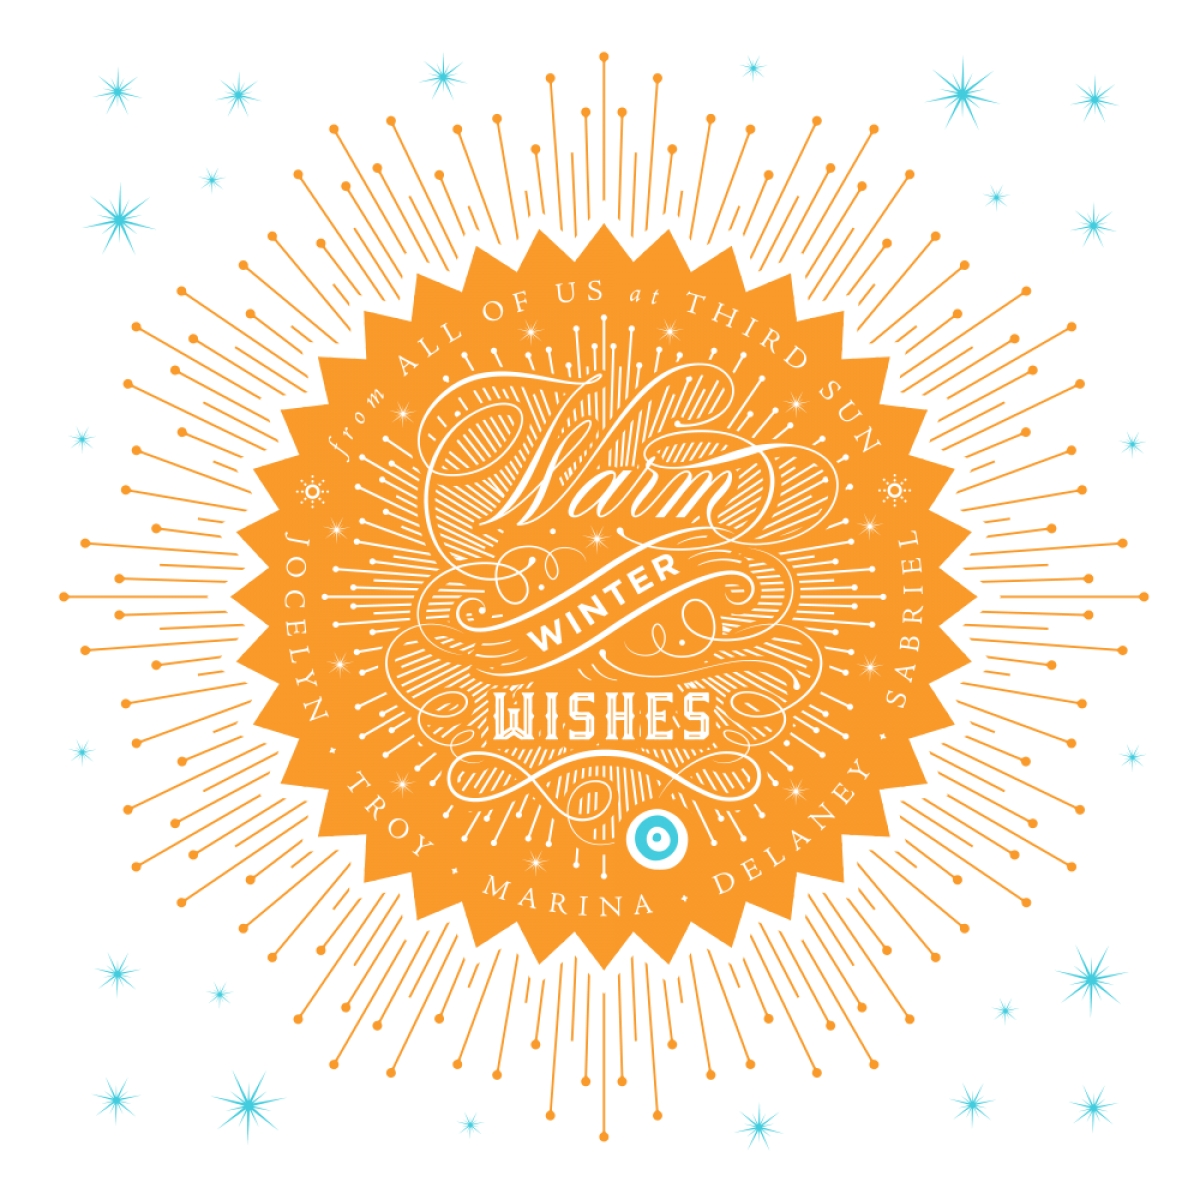 Winter Wrap-up and Warm Wishes